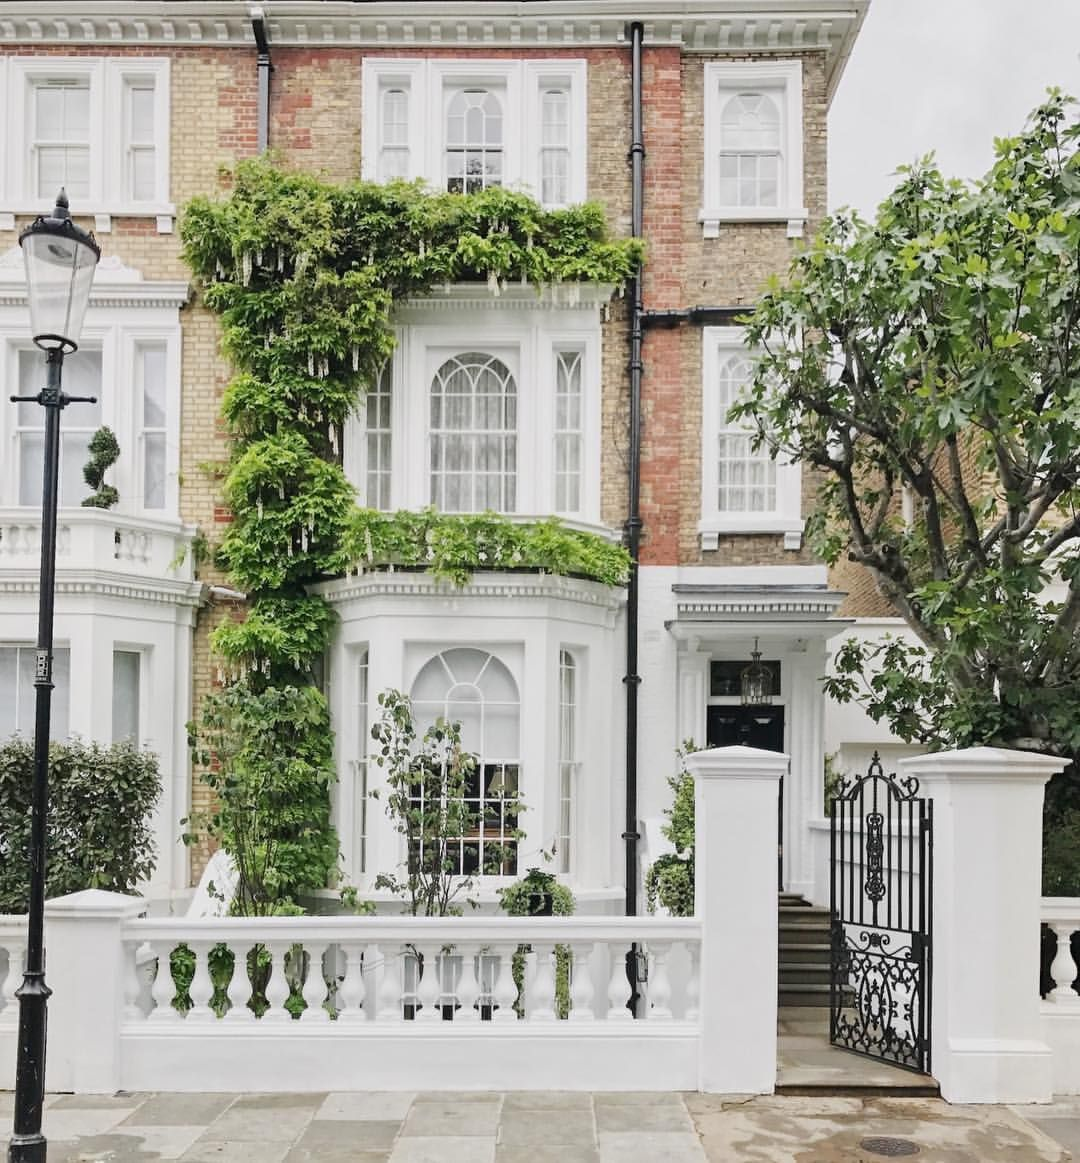 London Apartments Exterior: Pin By Jerry Gervasi On Town/Row House In 2019